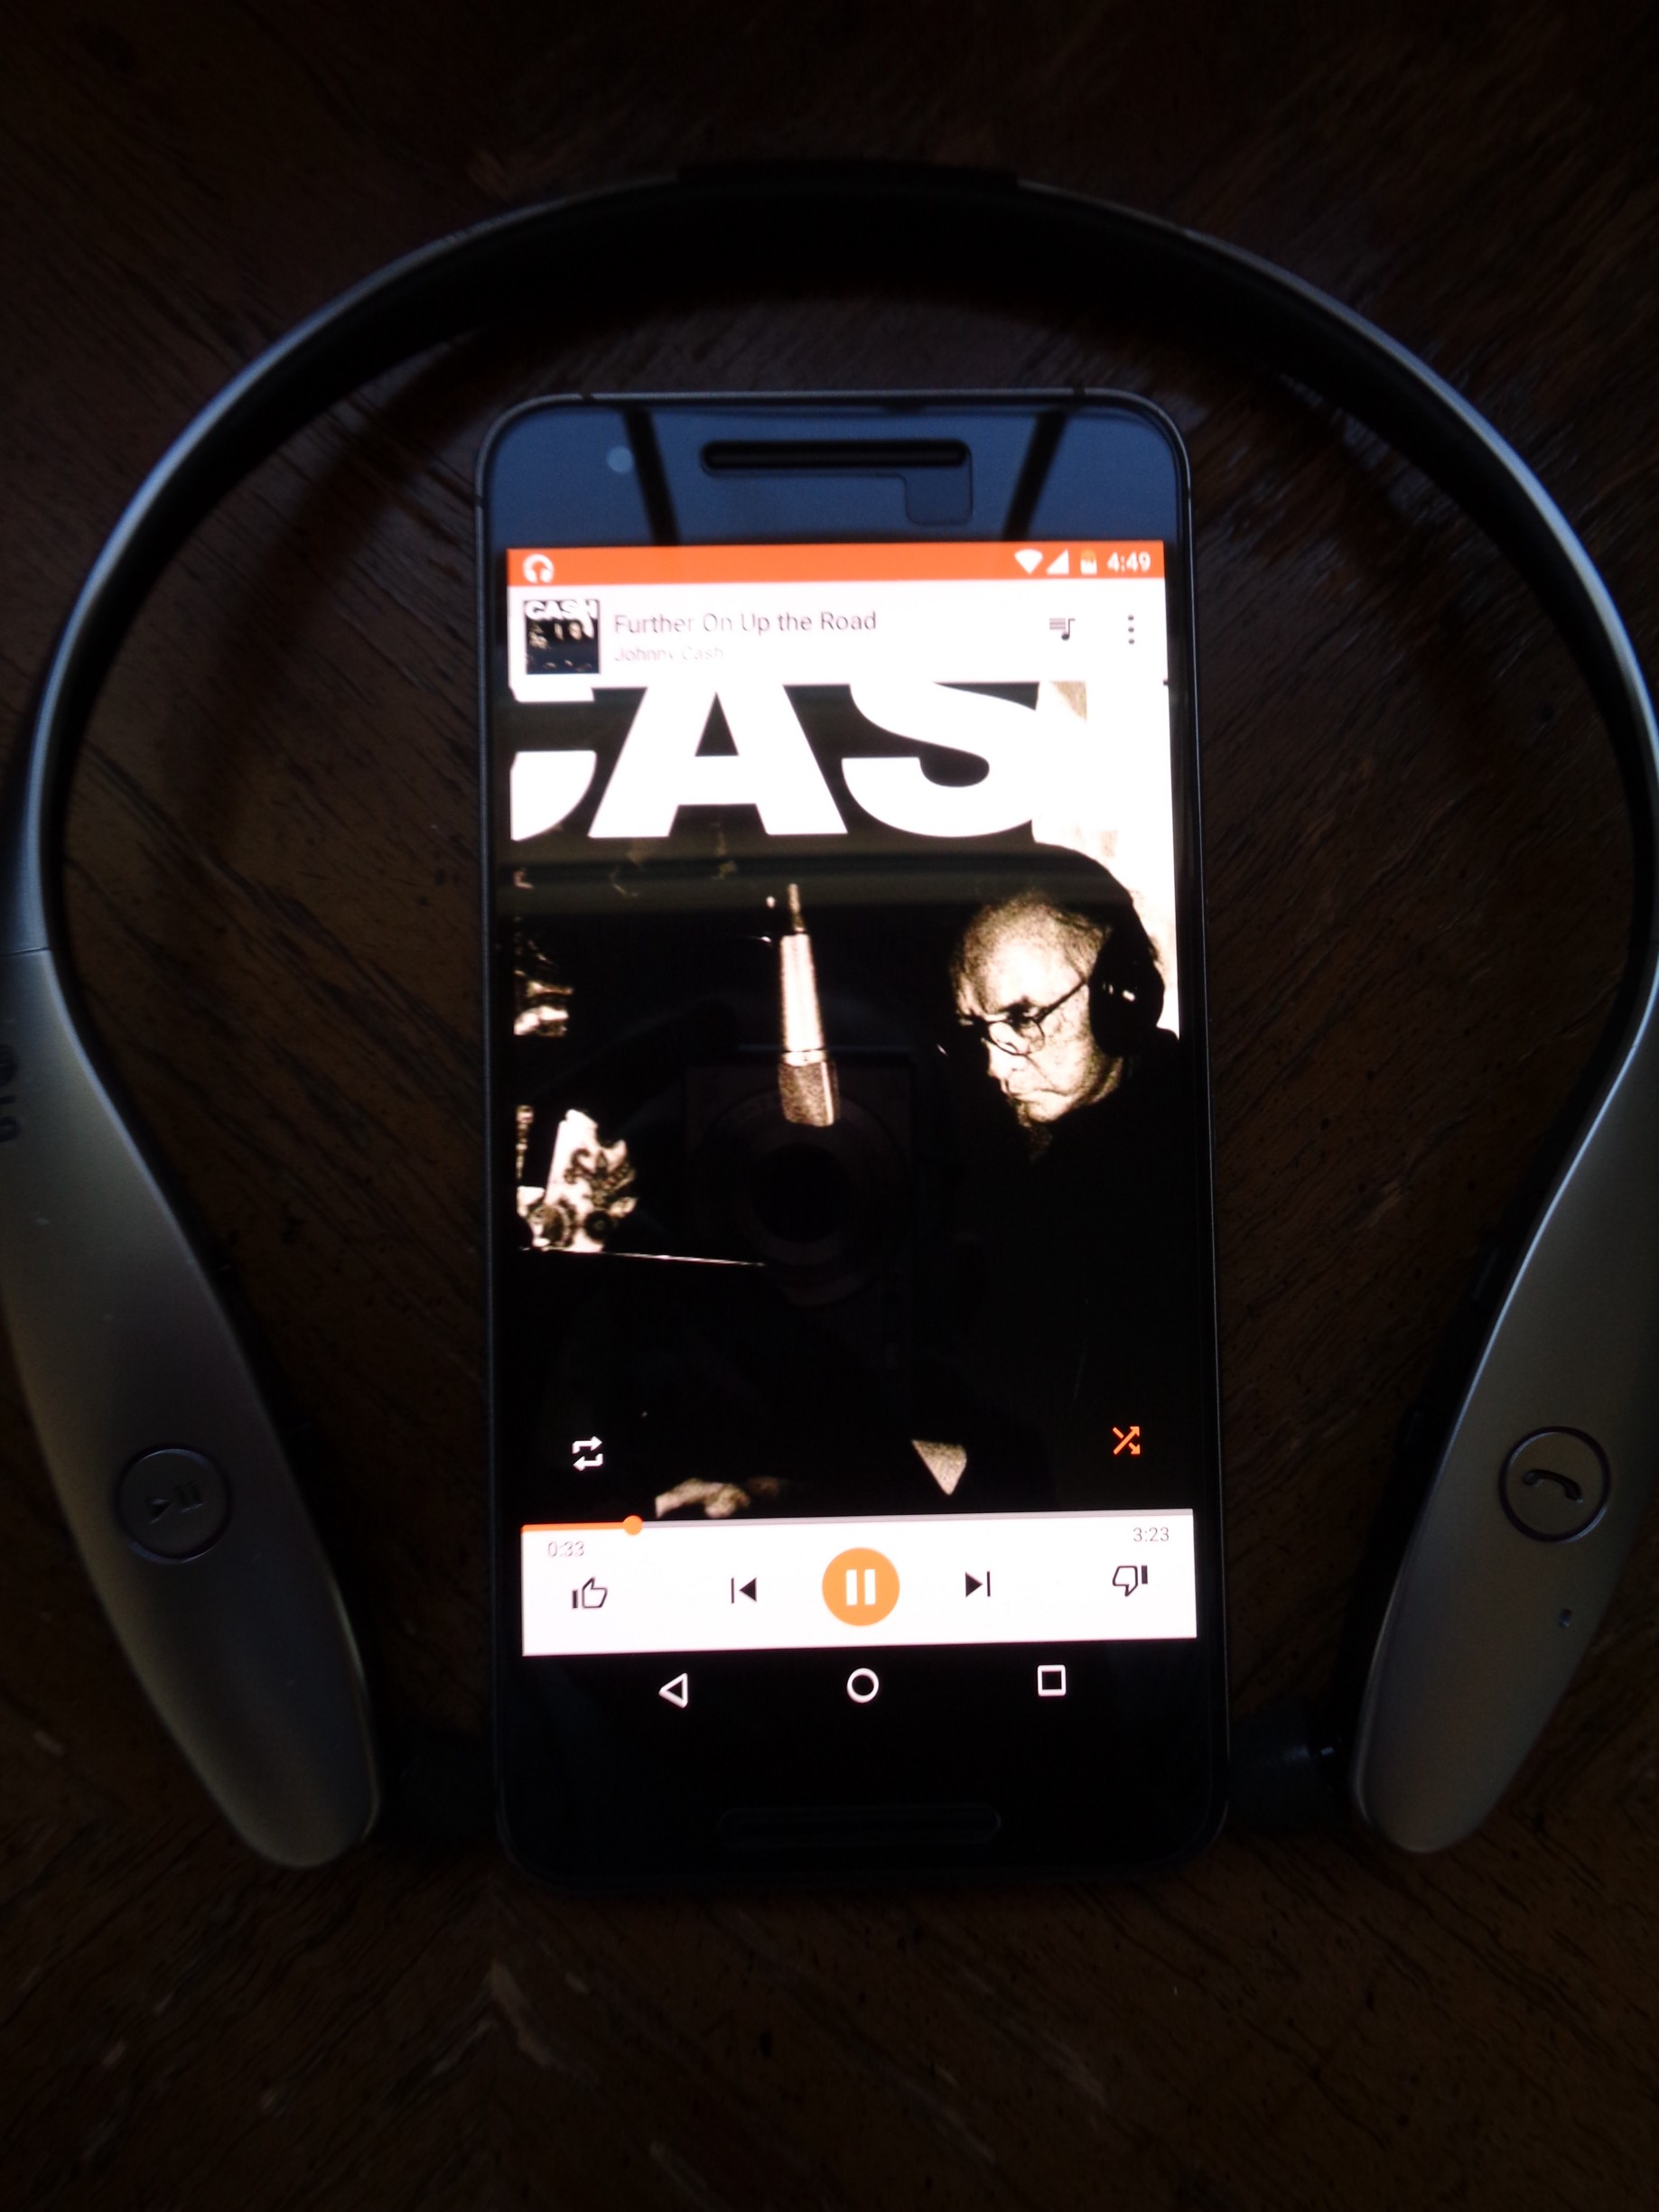 Comparing Google Play Music, Spotify, Apple Music and Microsoft